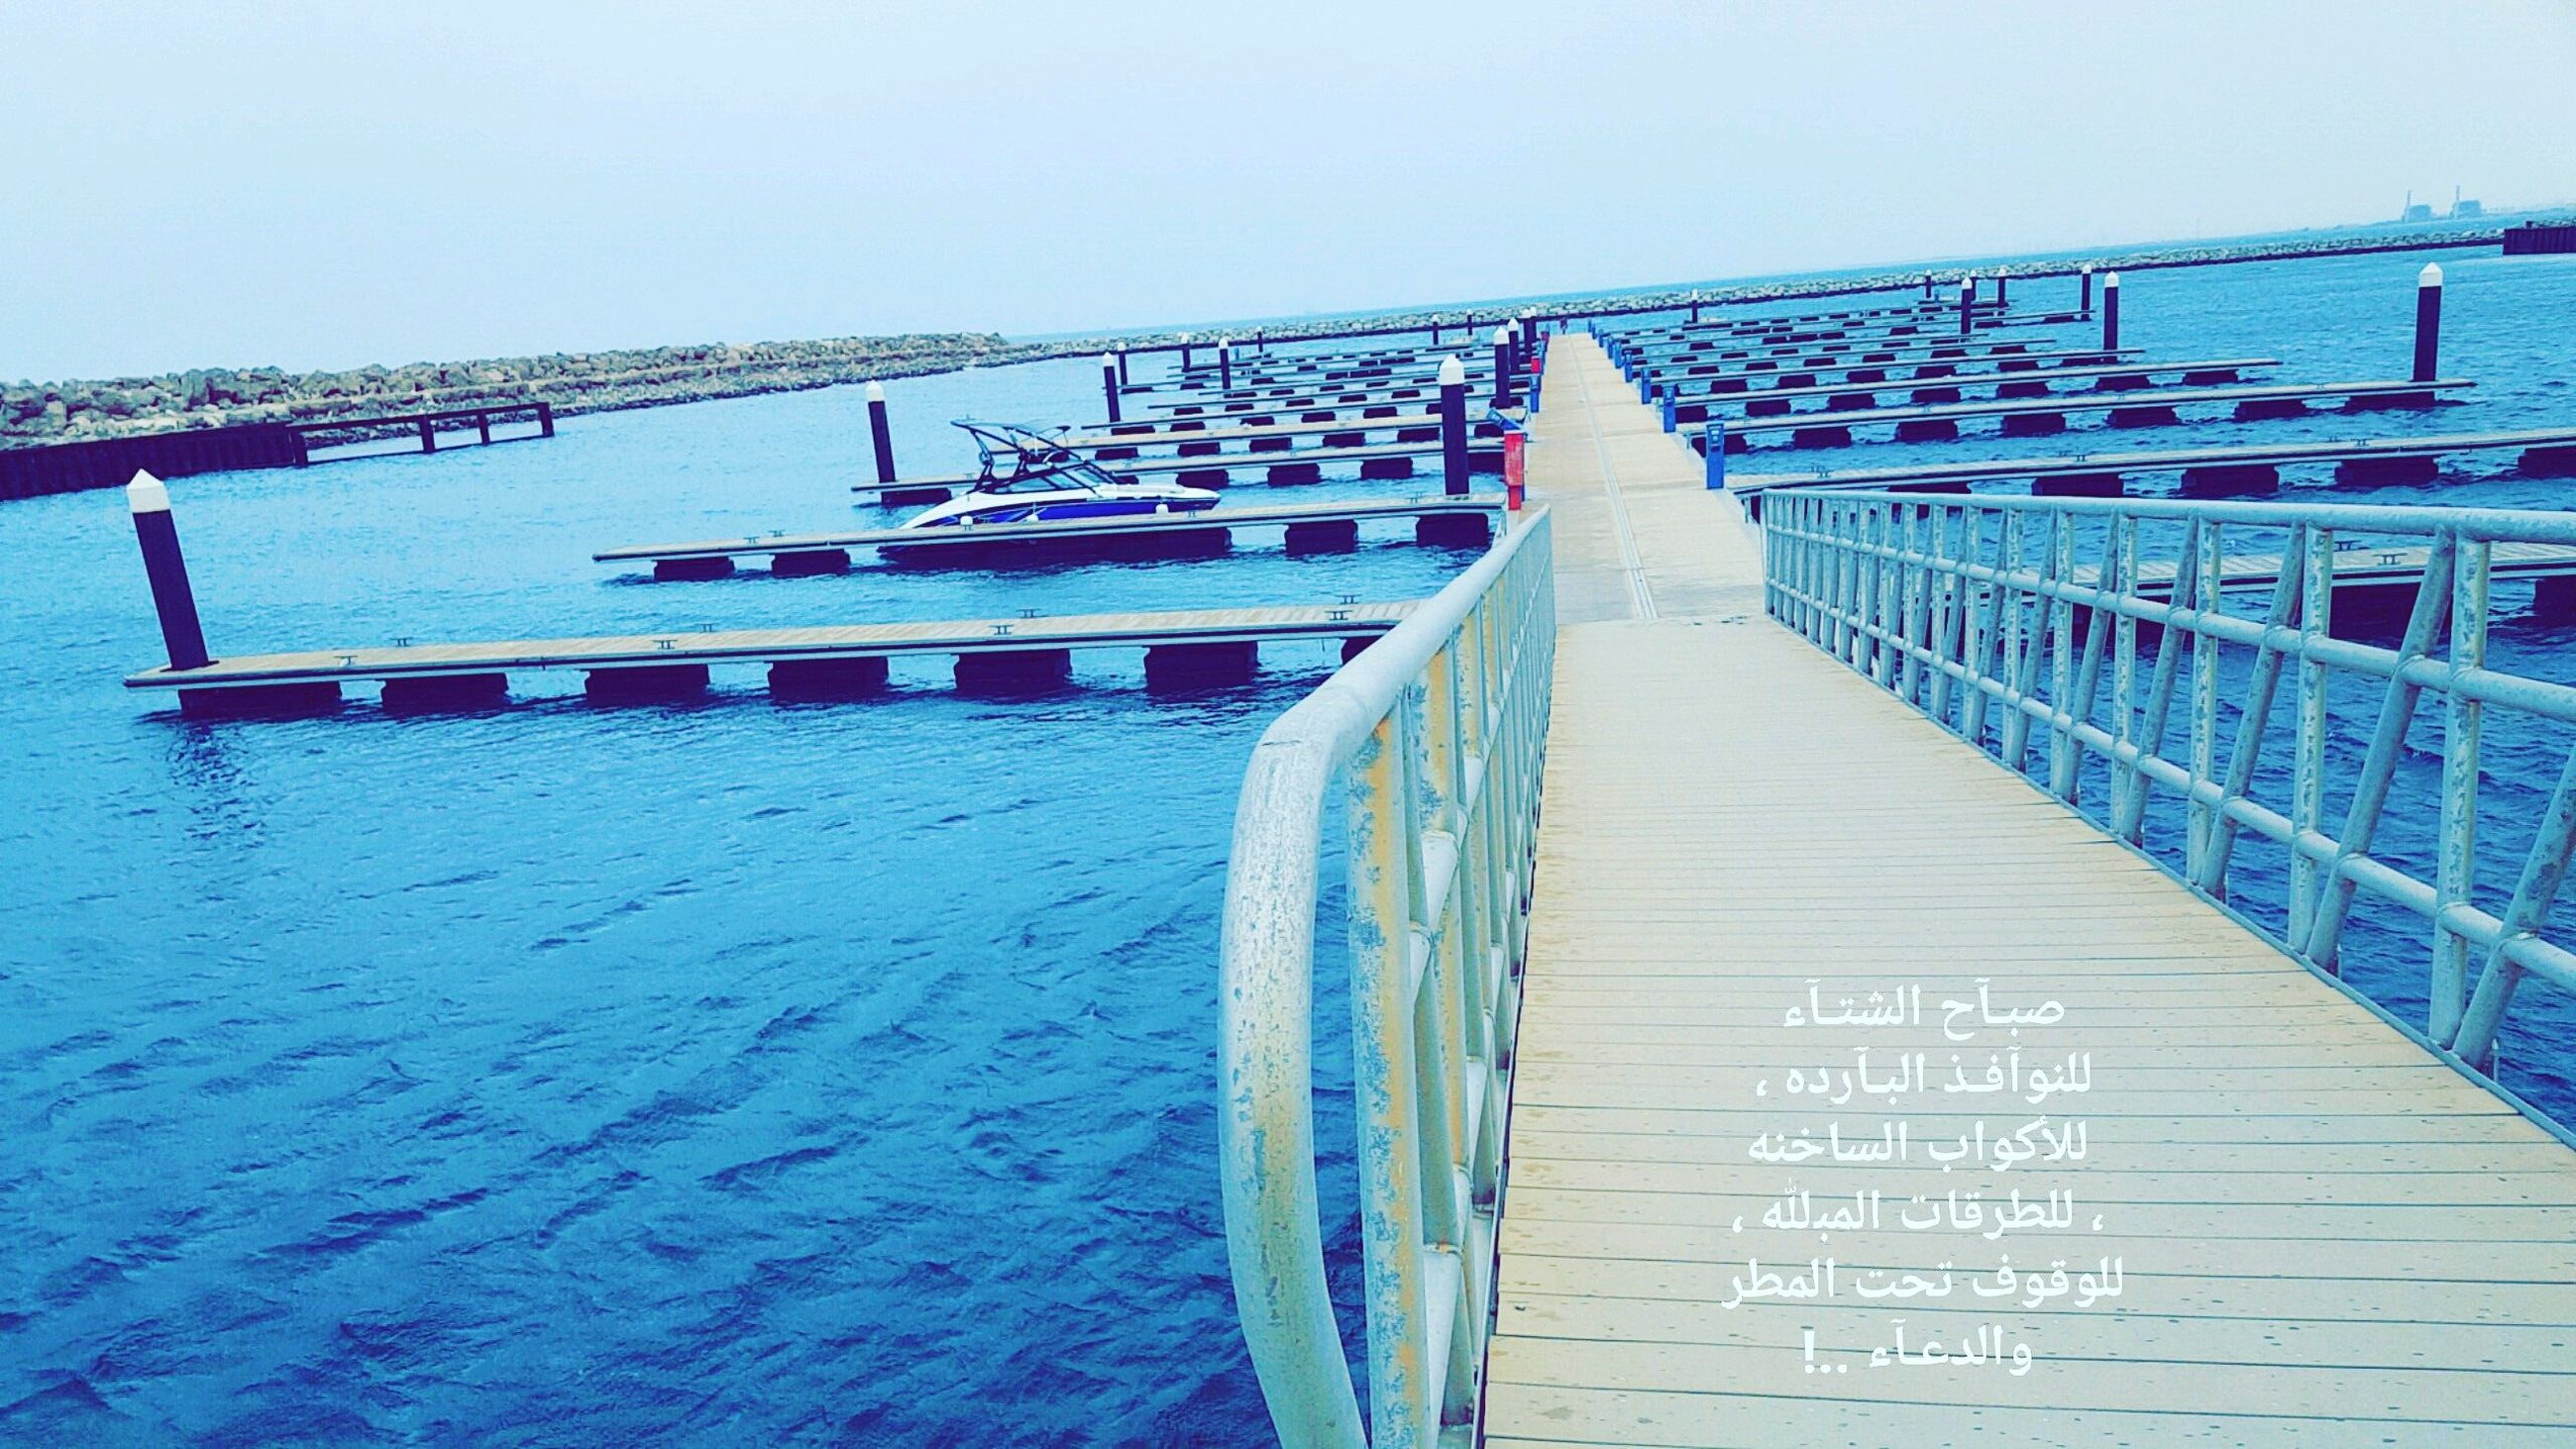 sea, water, outdoors, swimming pool, text, no people, day, nature, sky, beauty in nature, swimming lane marker